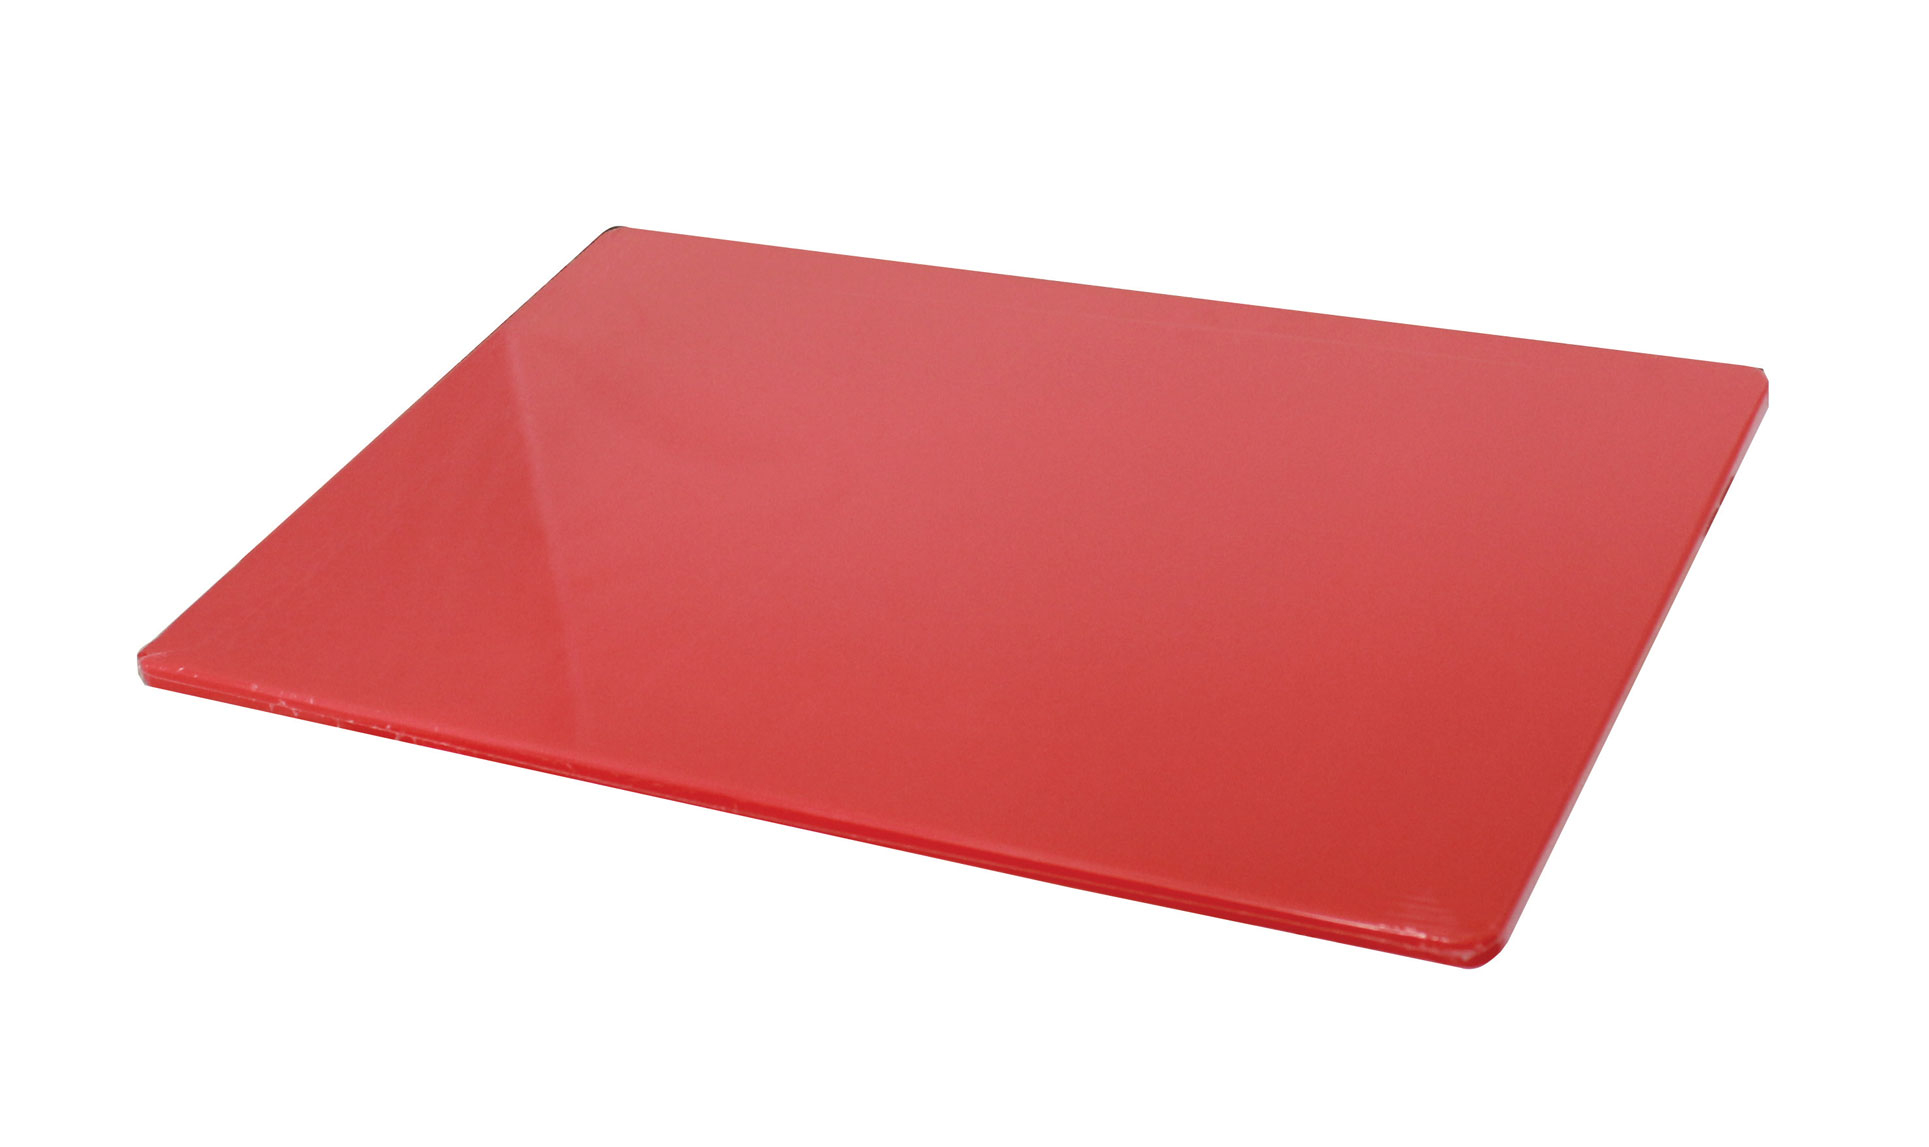 Red High Density Large Size C hopping Board 450 x 600 x 12.7